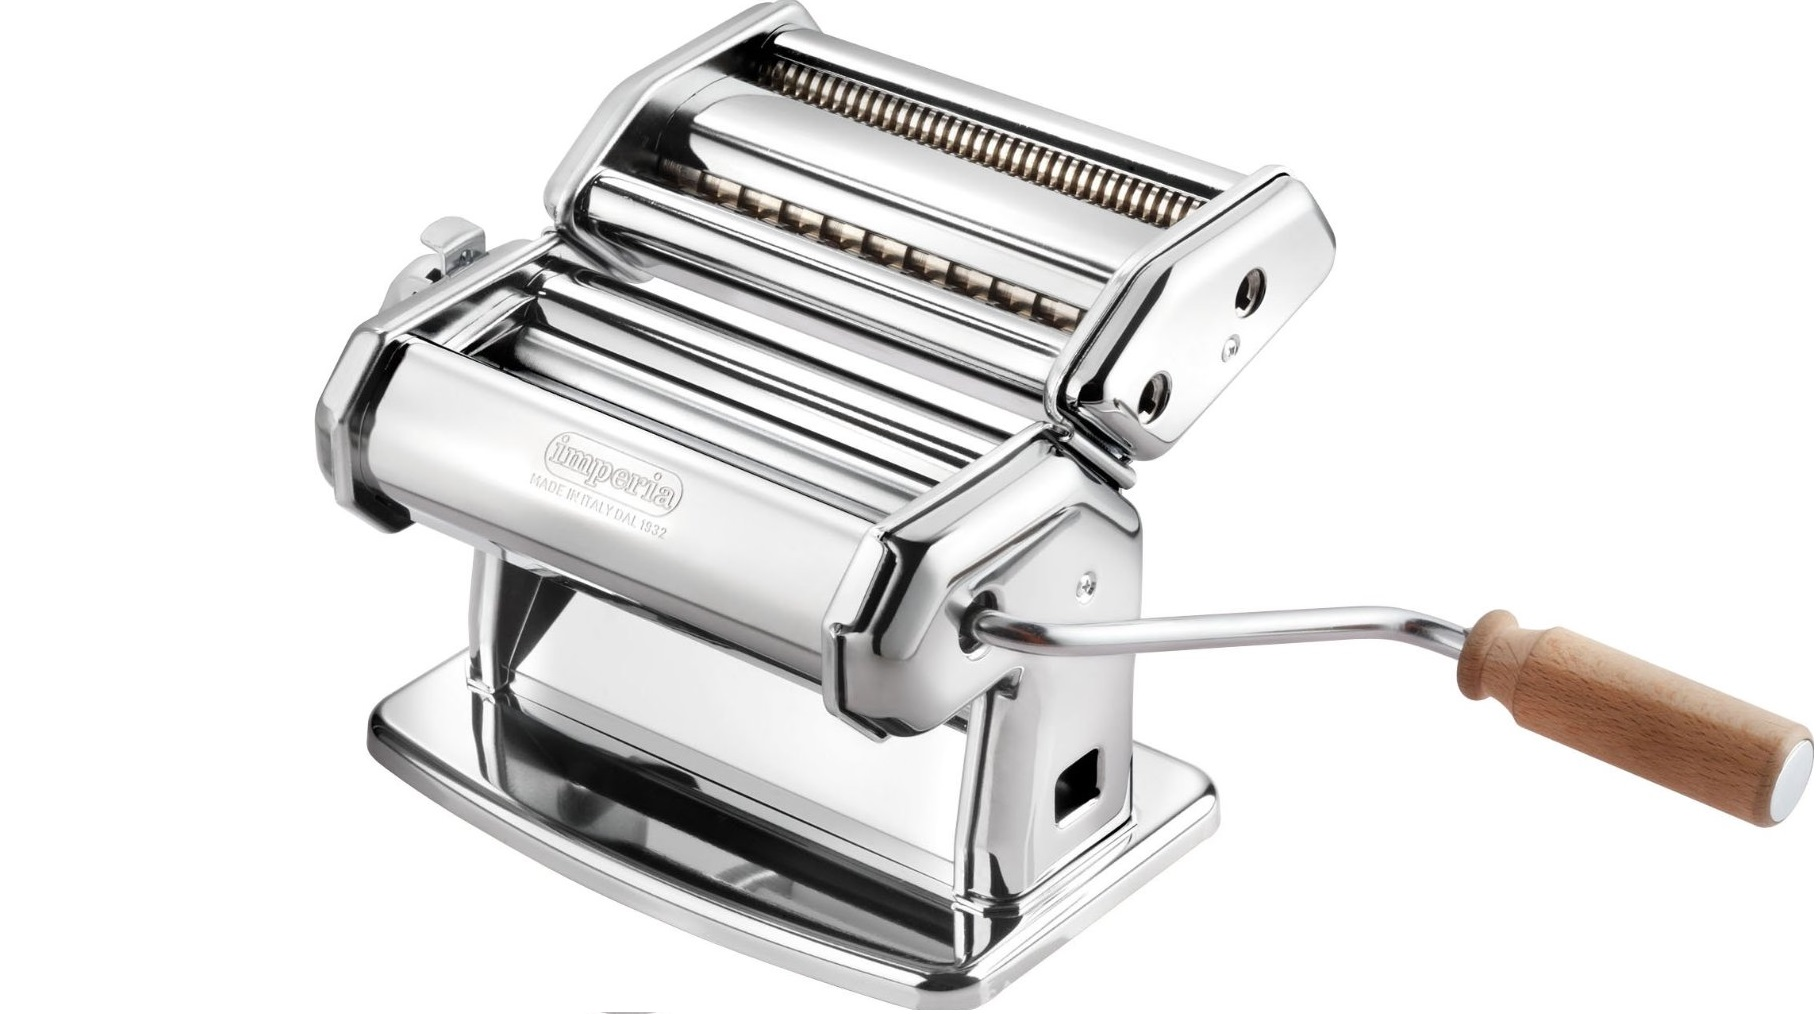 cucinapro imperia pasta machine review pasta maker hq. Black Bedroom Furniture Sets. Home Design Ideas